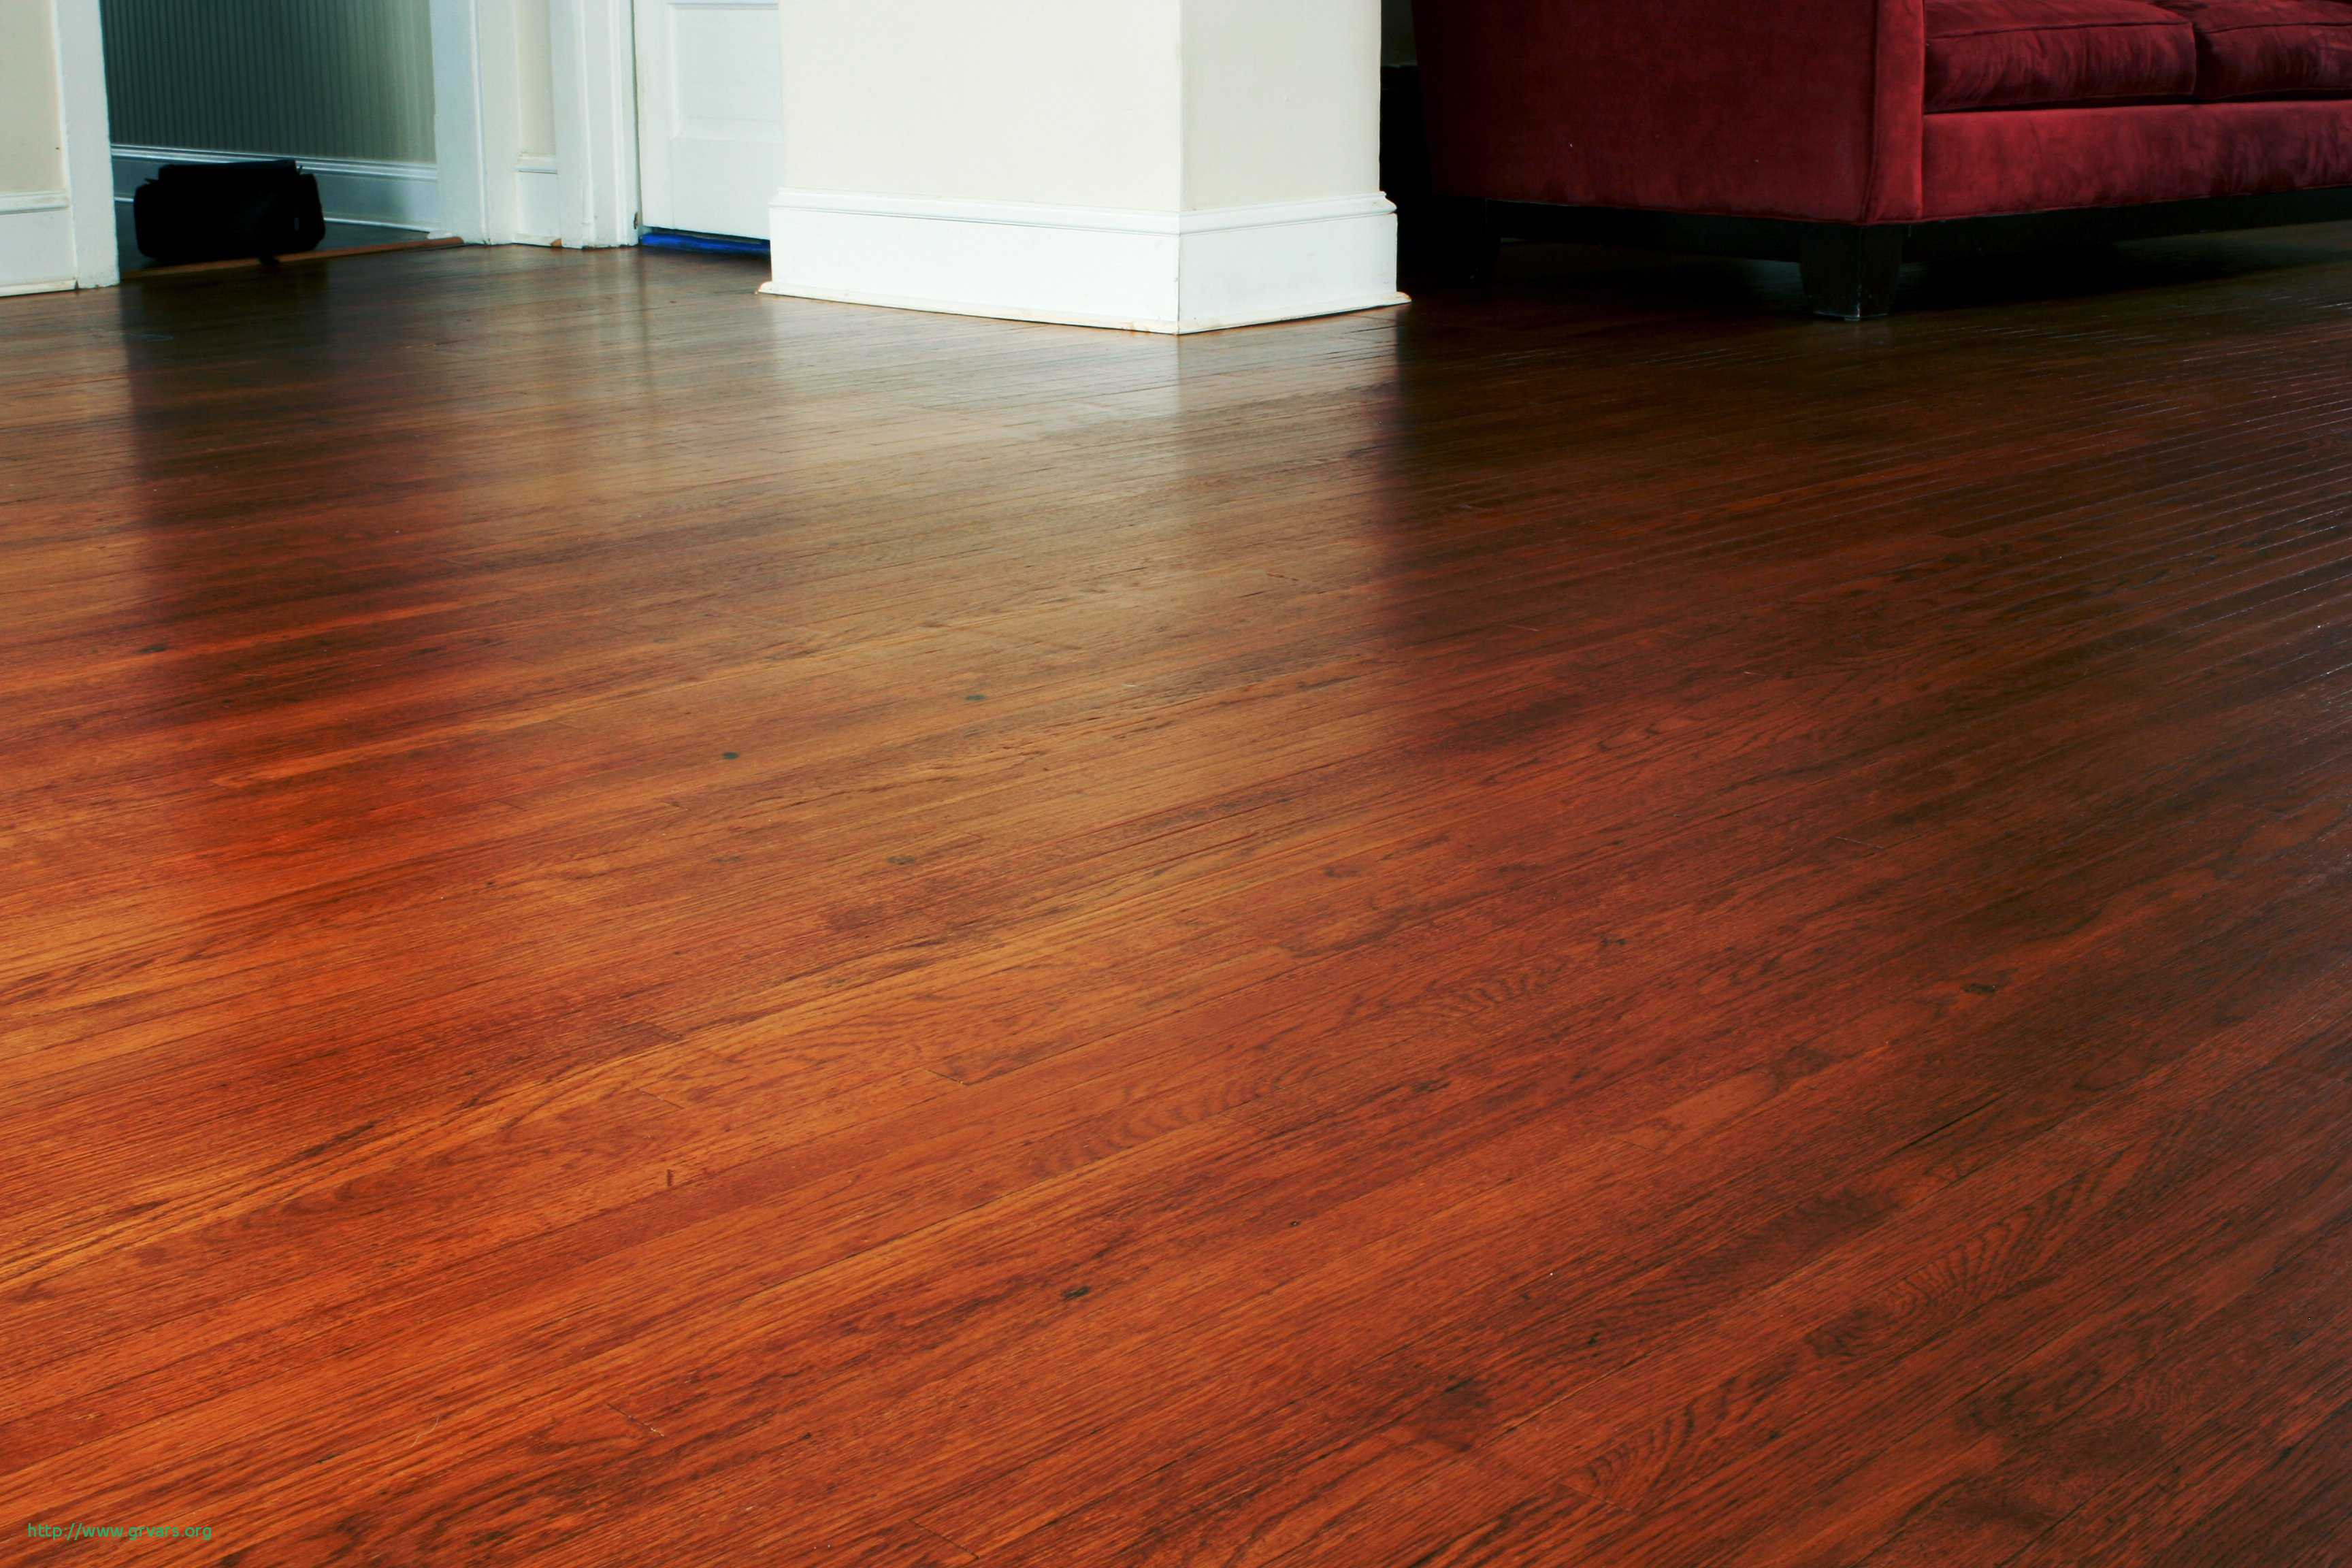 hardwood floor refinishing calgary of 15 luxe when can i put furniture on refinished hardwood floors for flooring mass when can i put furniture on refinished hardwood floors inspirant how to diagnose and repair sloping